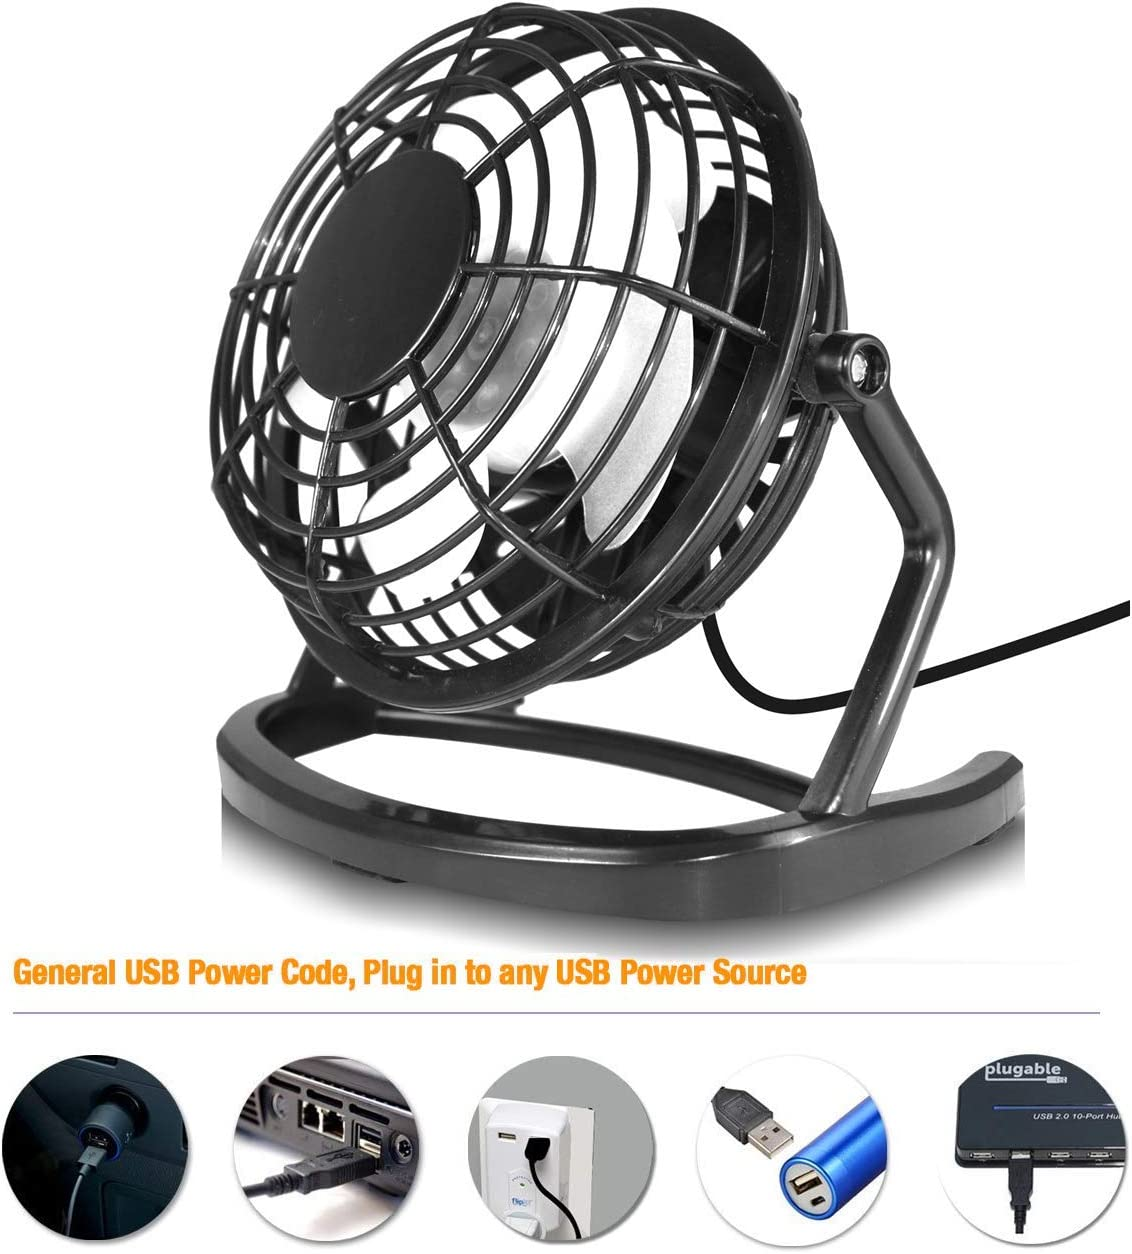 """4inch Compact USB Fan Mini 4/"""" Orzly USB Fan Mini 4 inch Twin Pack of Black 360 Rotation Light-Weight Portable Retro Desk Fans Powered by USB Socket of a Laptop or PC or Any USB Mains Adapter"""